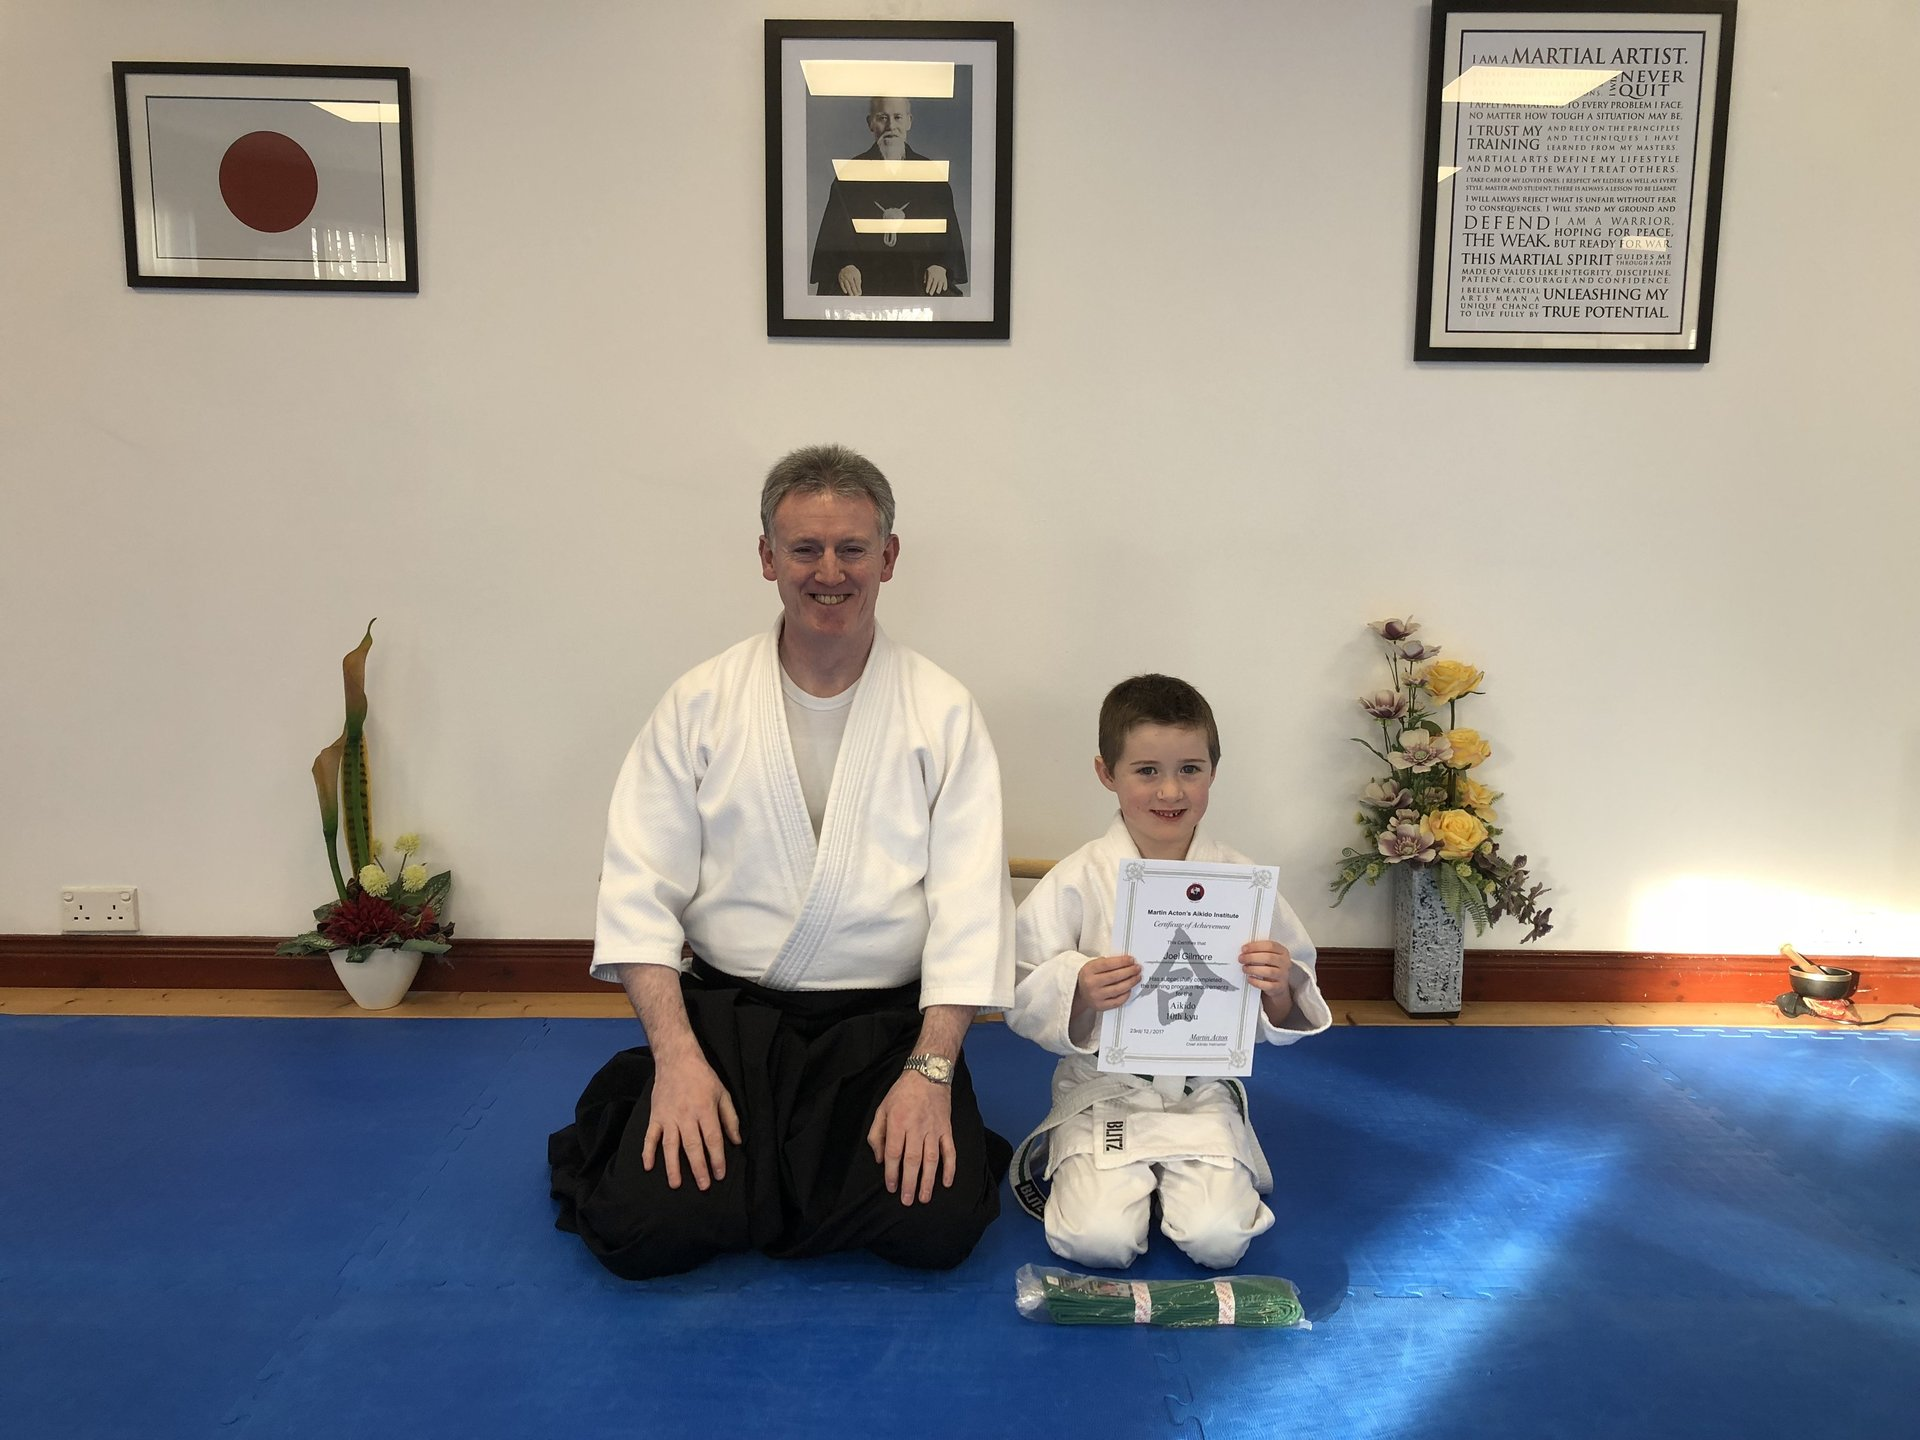 Joel Gilmore receiving his Aikido 10th kyu grading certification with Martin Acton Sensei on the 23/12/2017 at Martin Acton's Aikido Institute.